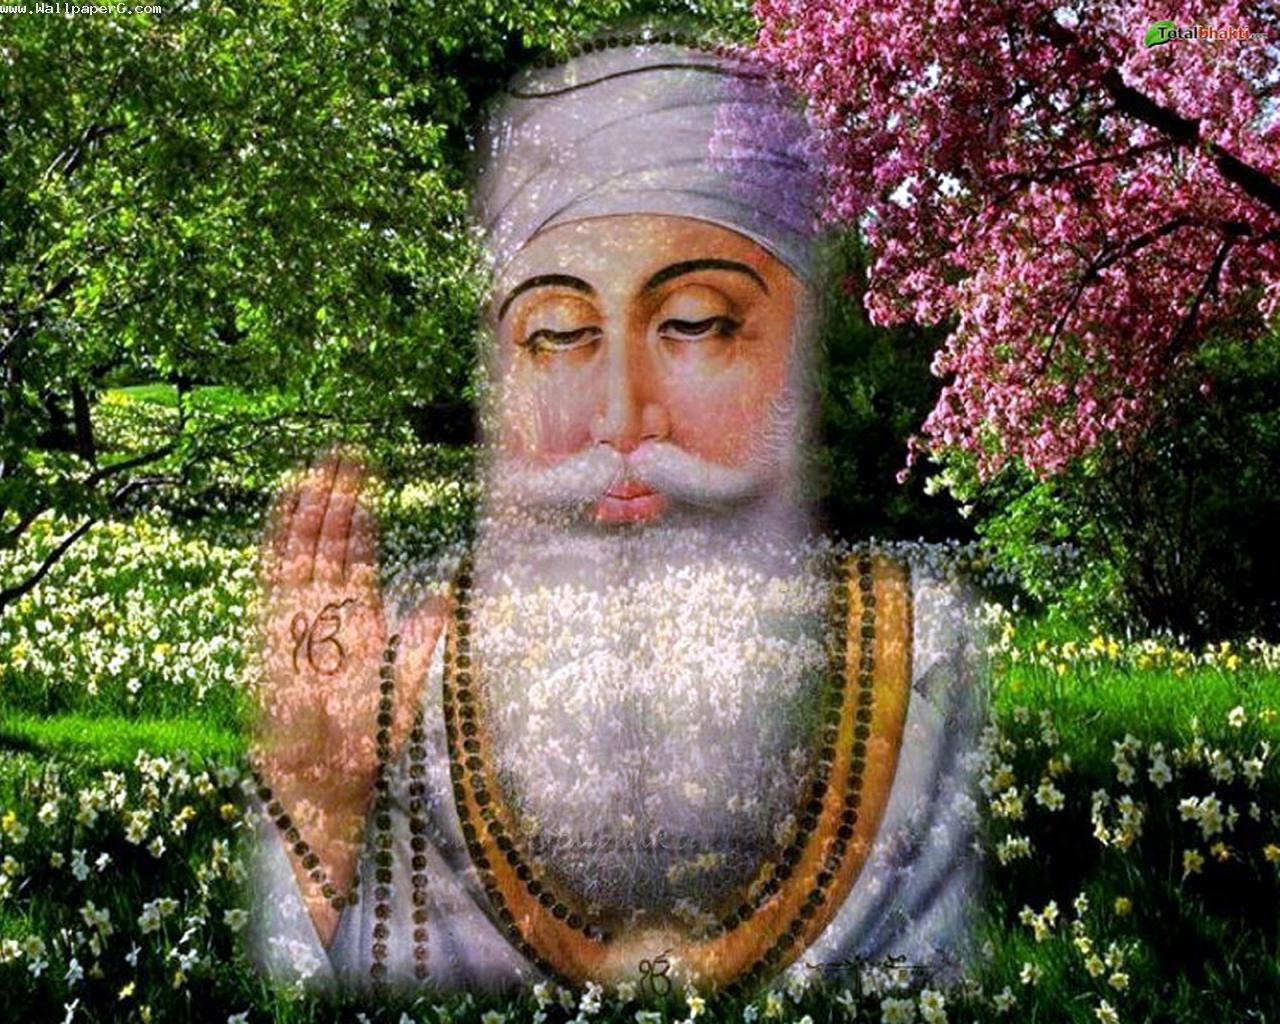 Sweet Cute Wallpapers 240x320 Download Guru Nanak Ji Spiritual Wallpaper For Your